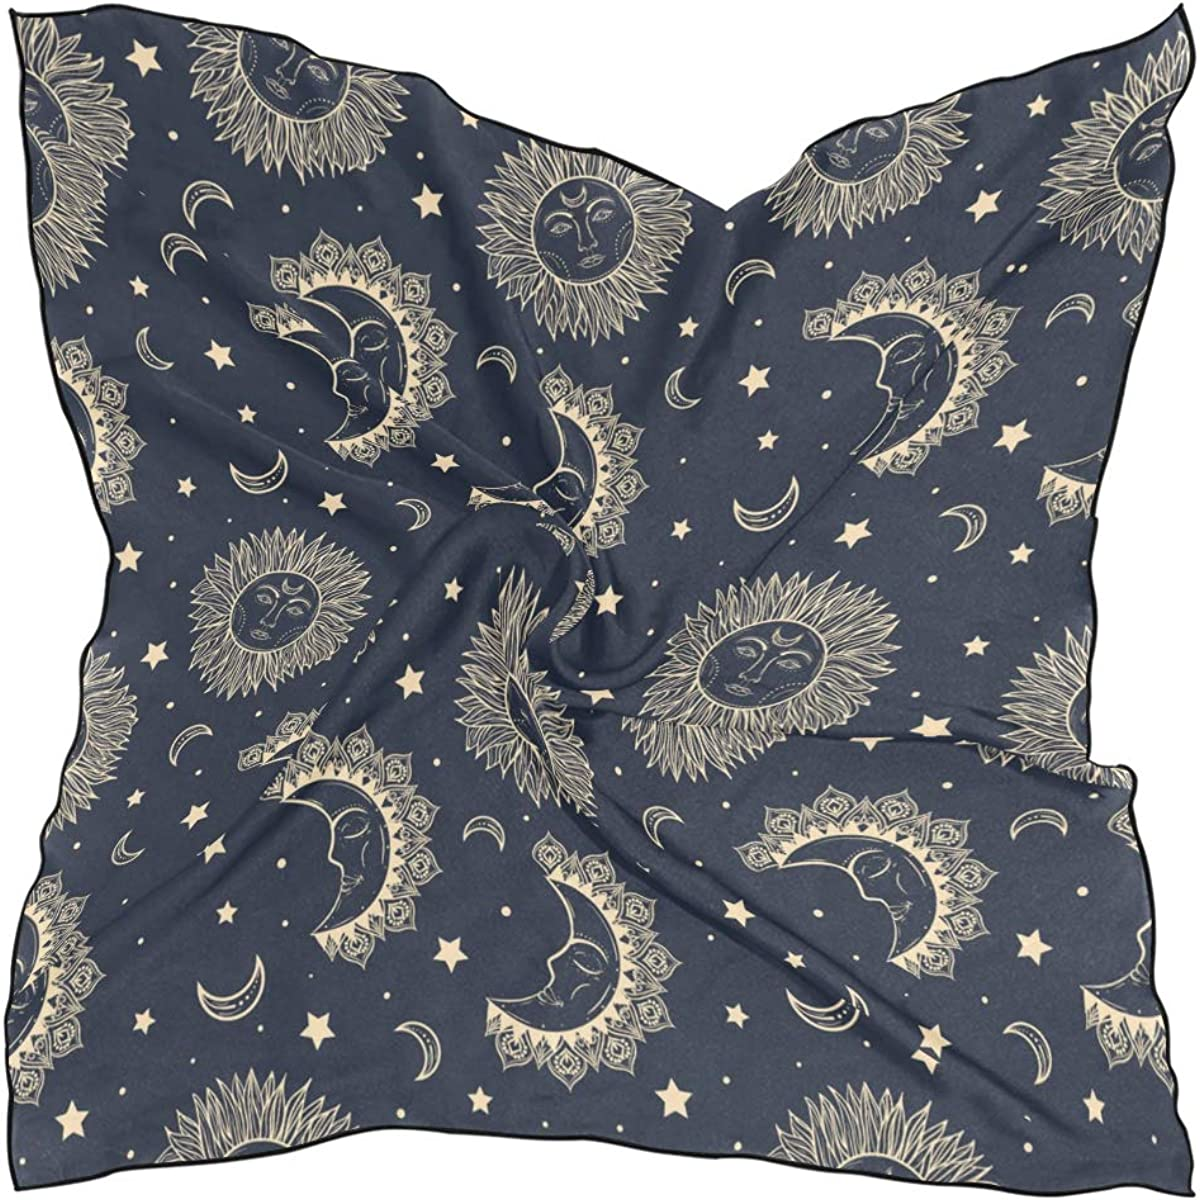 Women's Soft Polyester Silk Square Scarf Constellation Starry Sky Mysterious Fashion Print Head & Hair Scarf Neckerchief Accessory-23.6x23.6 Inch